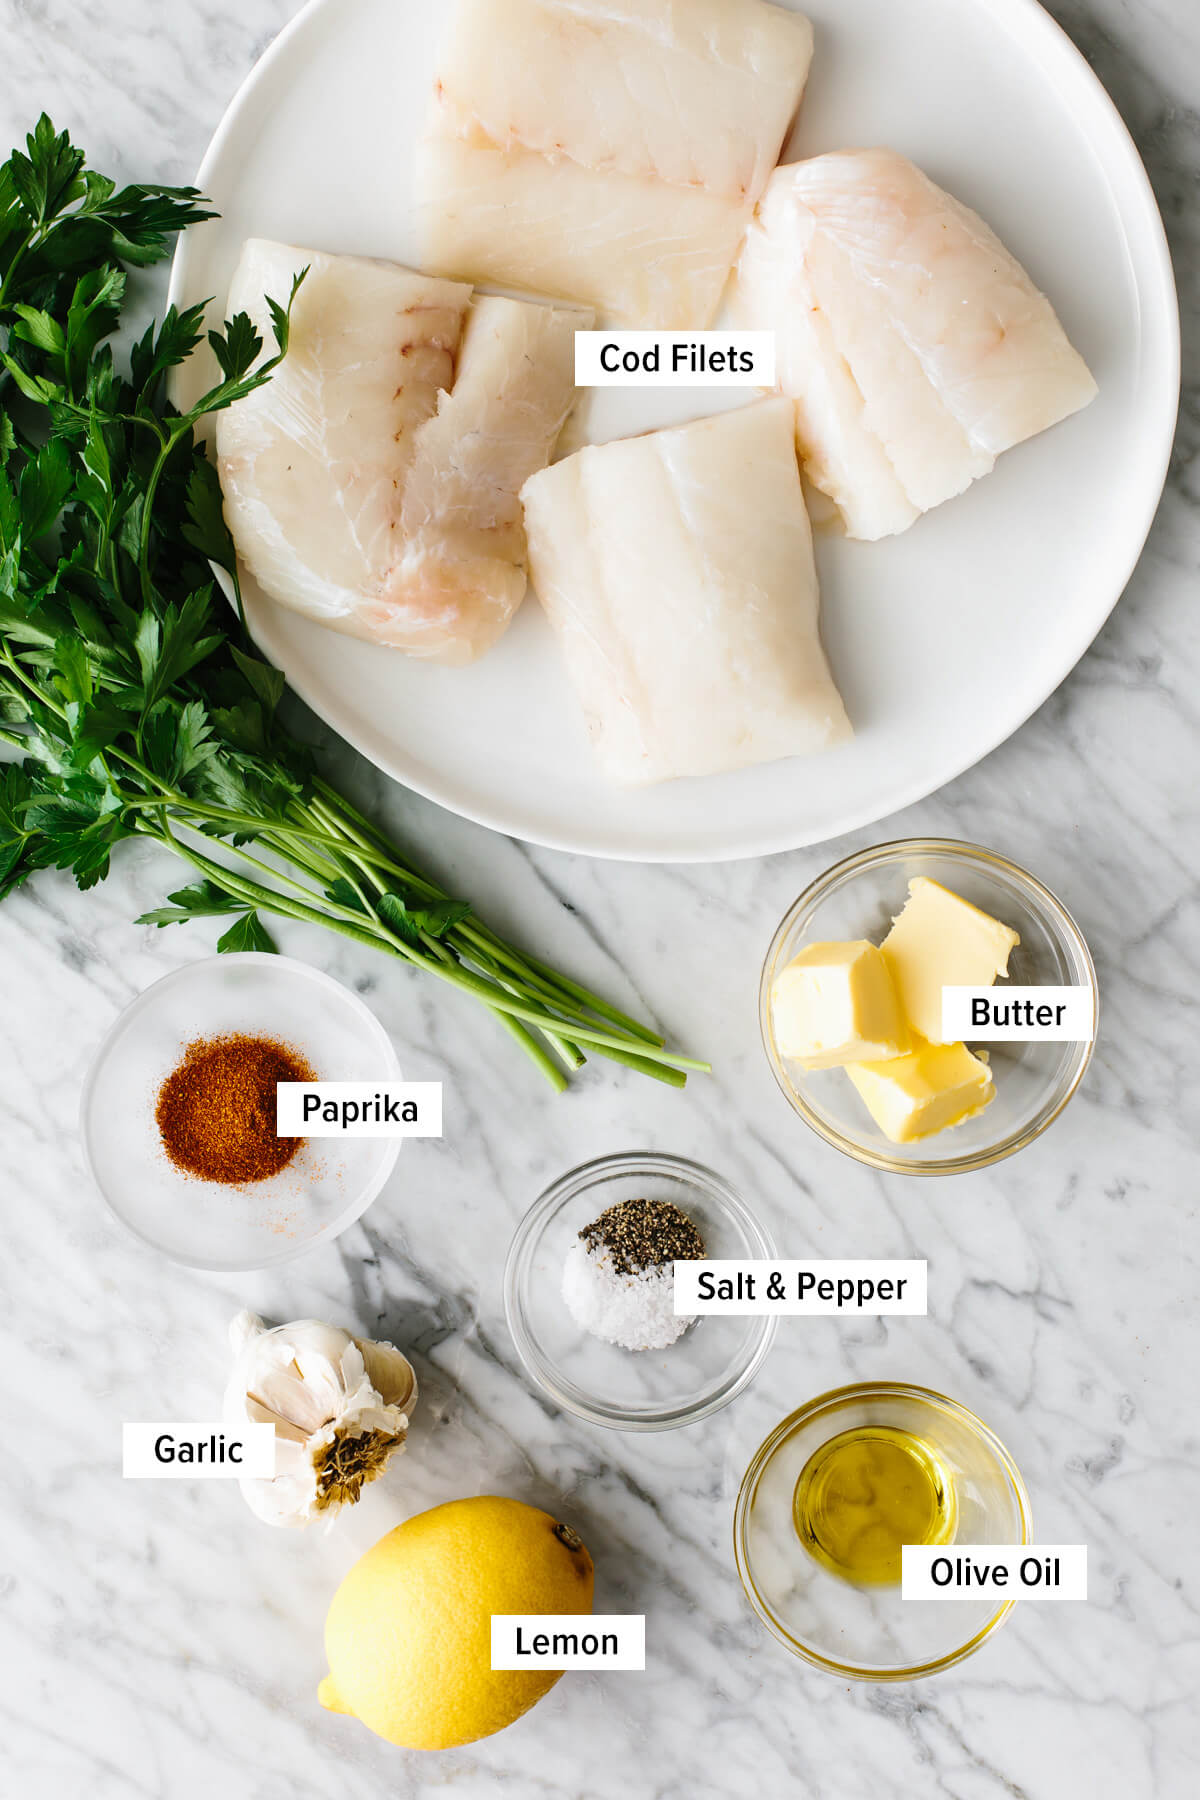 Ingredients for baked cod laid out on a table.